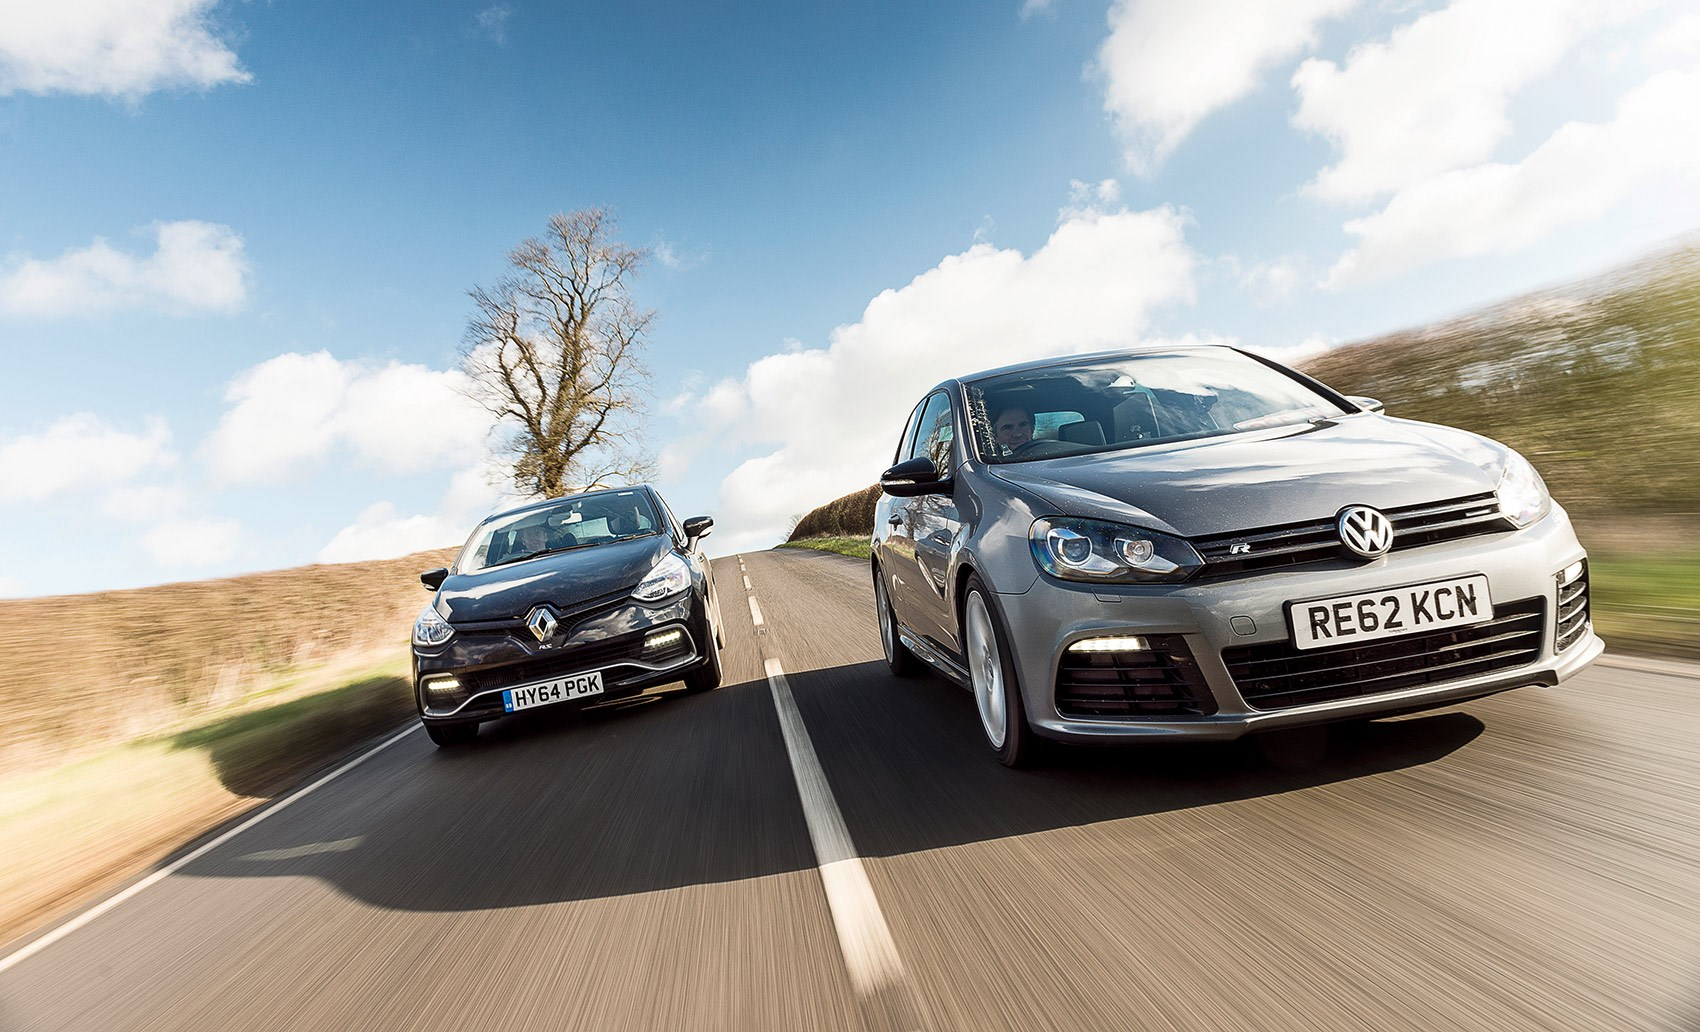 Vw golf r mk6 cars one love -  Icon Buyer New Renault Clio Rs 200 Vs Used Vw Golf R Mk6